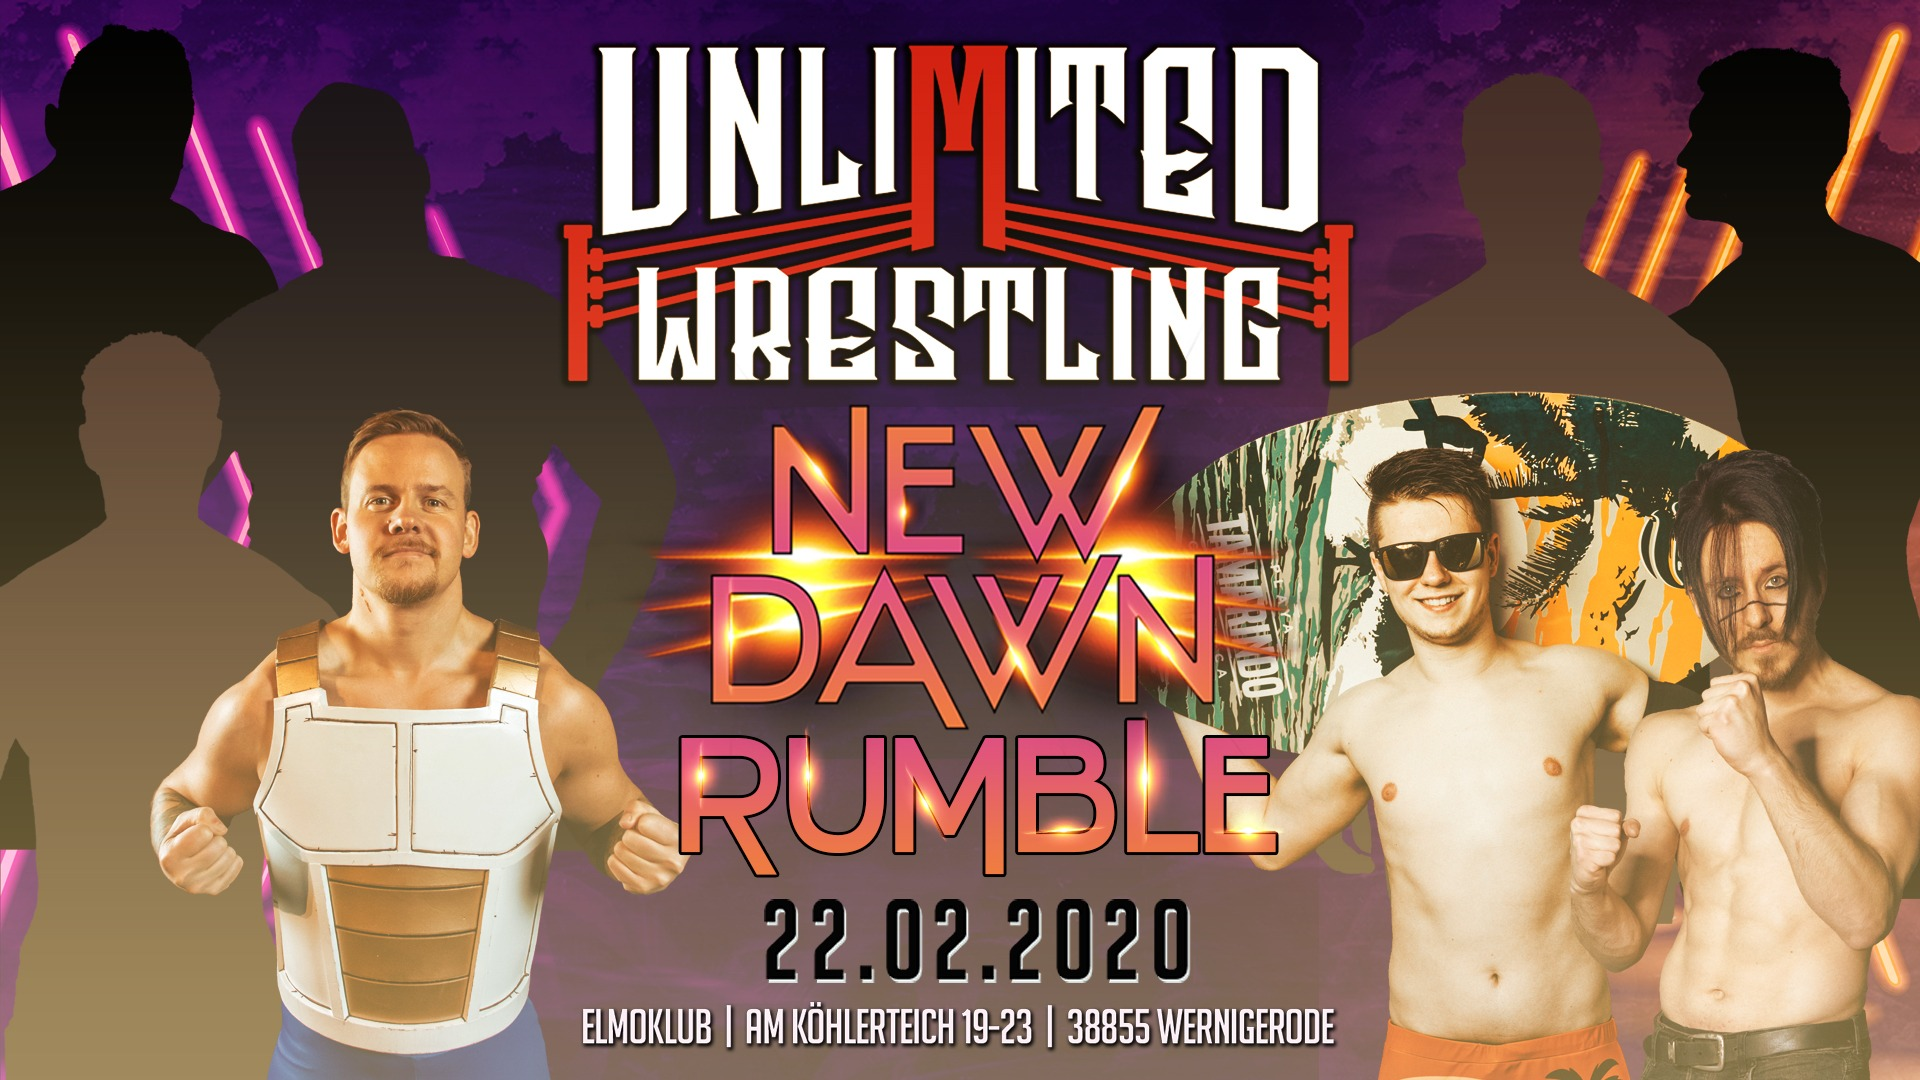 15 Men New Dawn Rumble